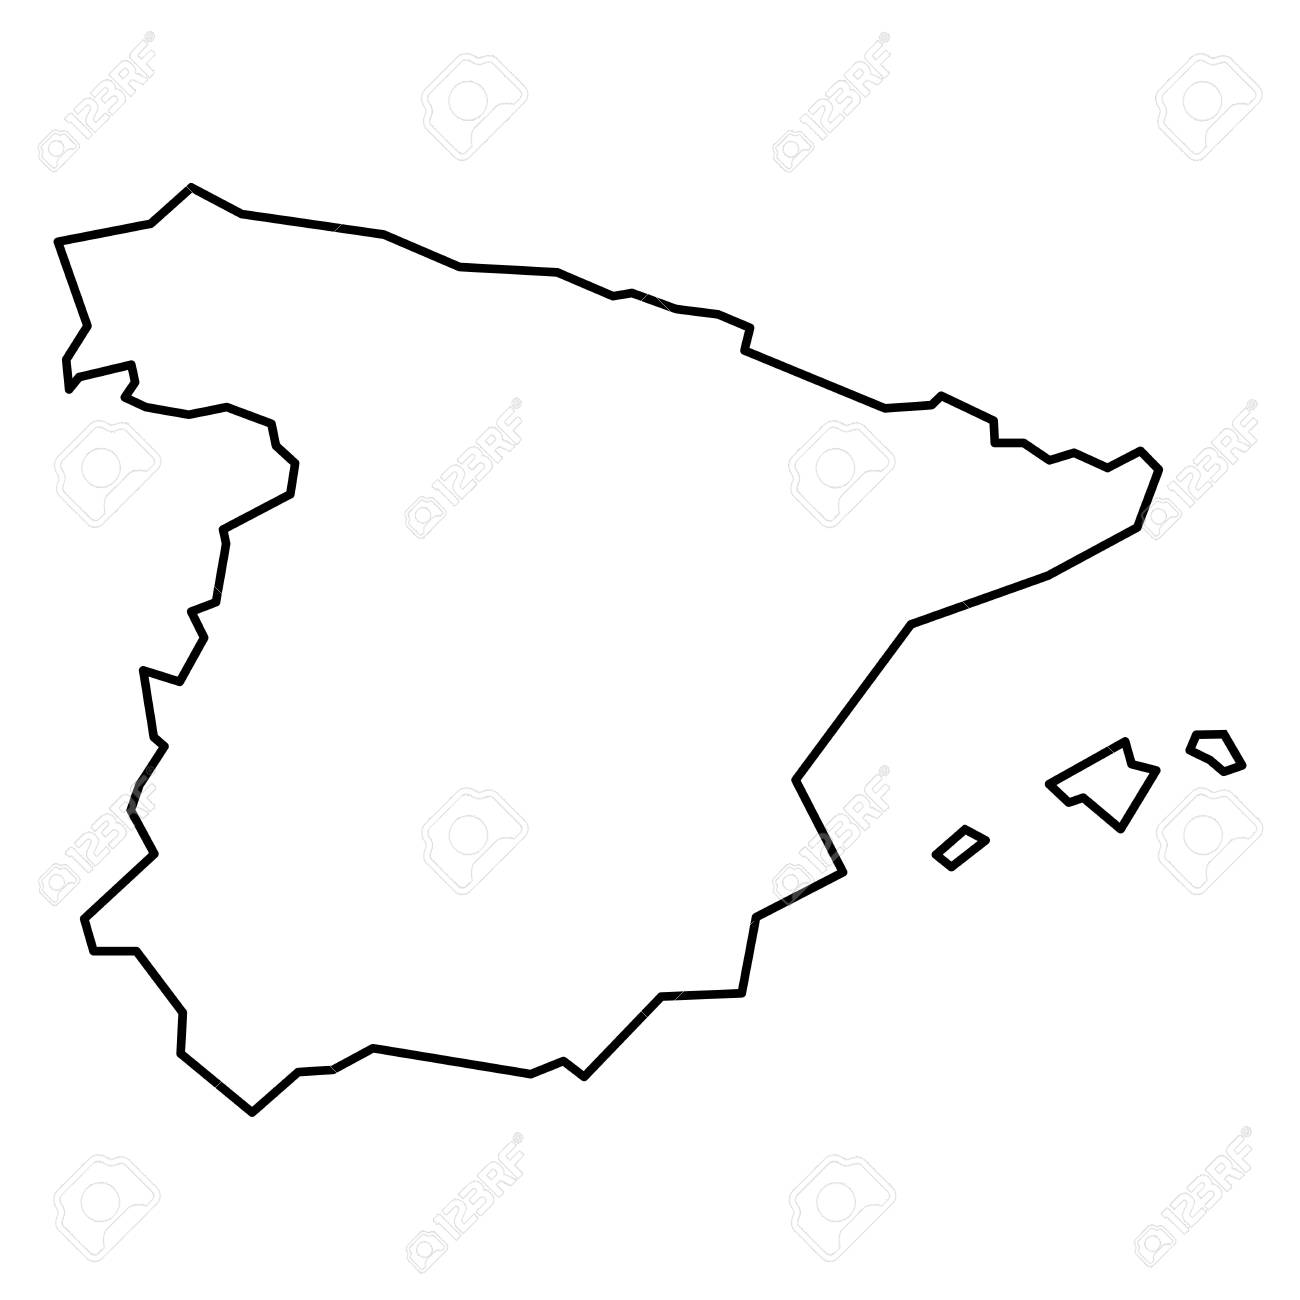 Map Of Spain Drawing.Simple Contour Map Of Spain Black Outline Map Isolated On White